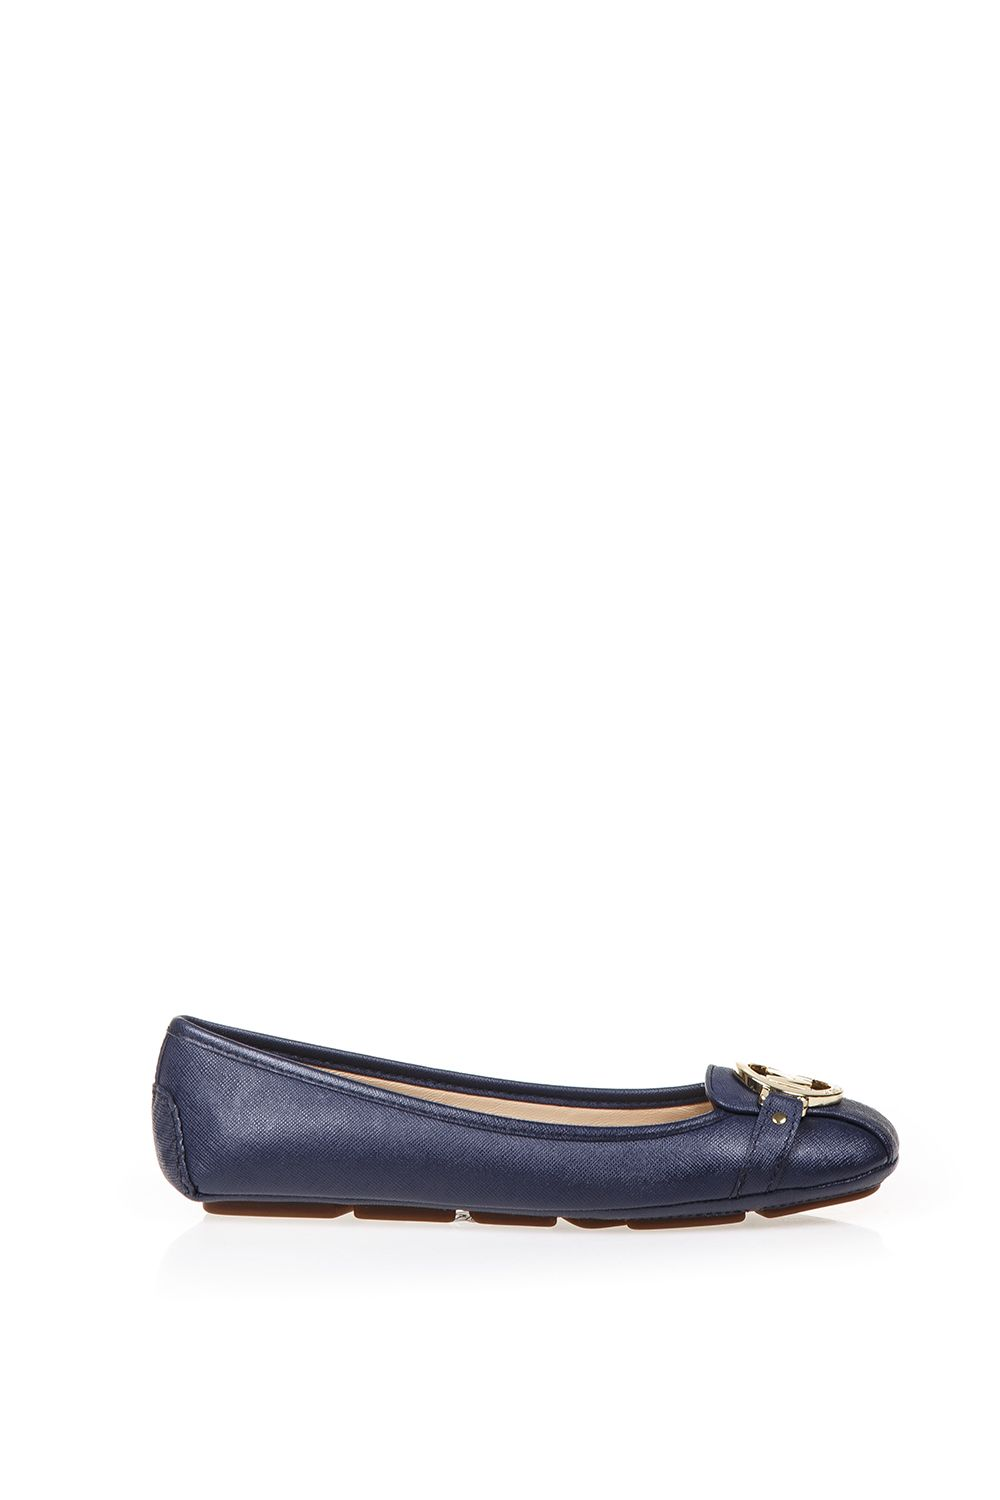 michael michael kors michael michael kors leather ballerinas with logo navy women 39 s flat. Black Bedroom Furniture Sets. Home Design Ideas